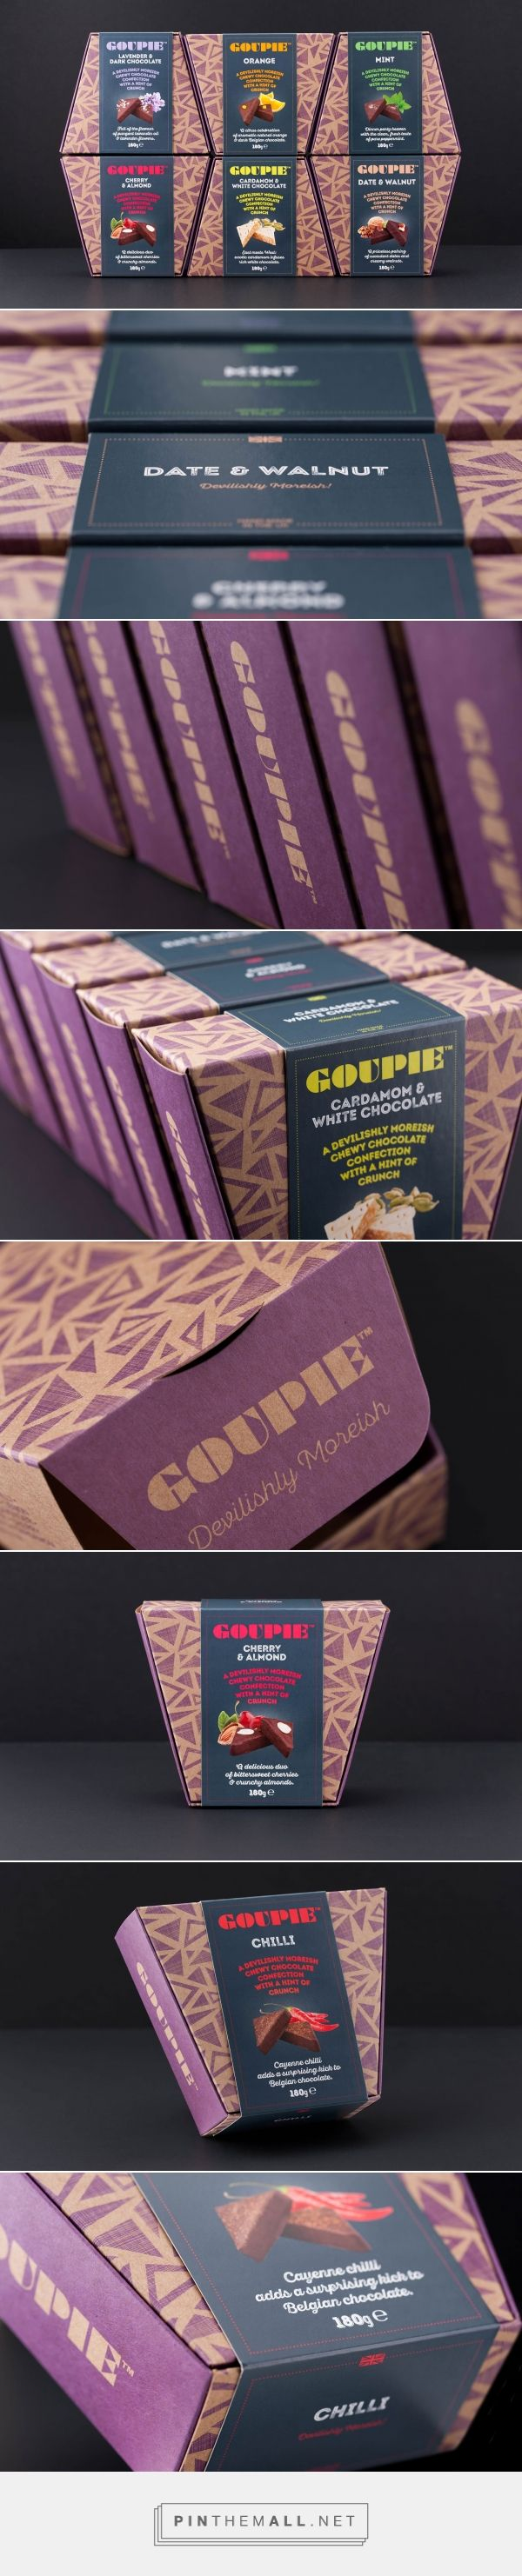 Goupie Confectionery - Packaging of the World - Creative Package Design Gallery - http://www.packagingoftheworld.com/2017/10/goupie-confectionery.html